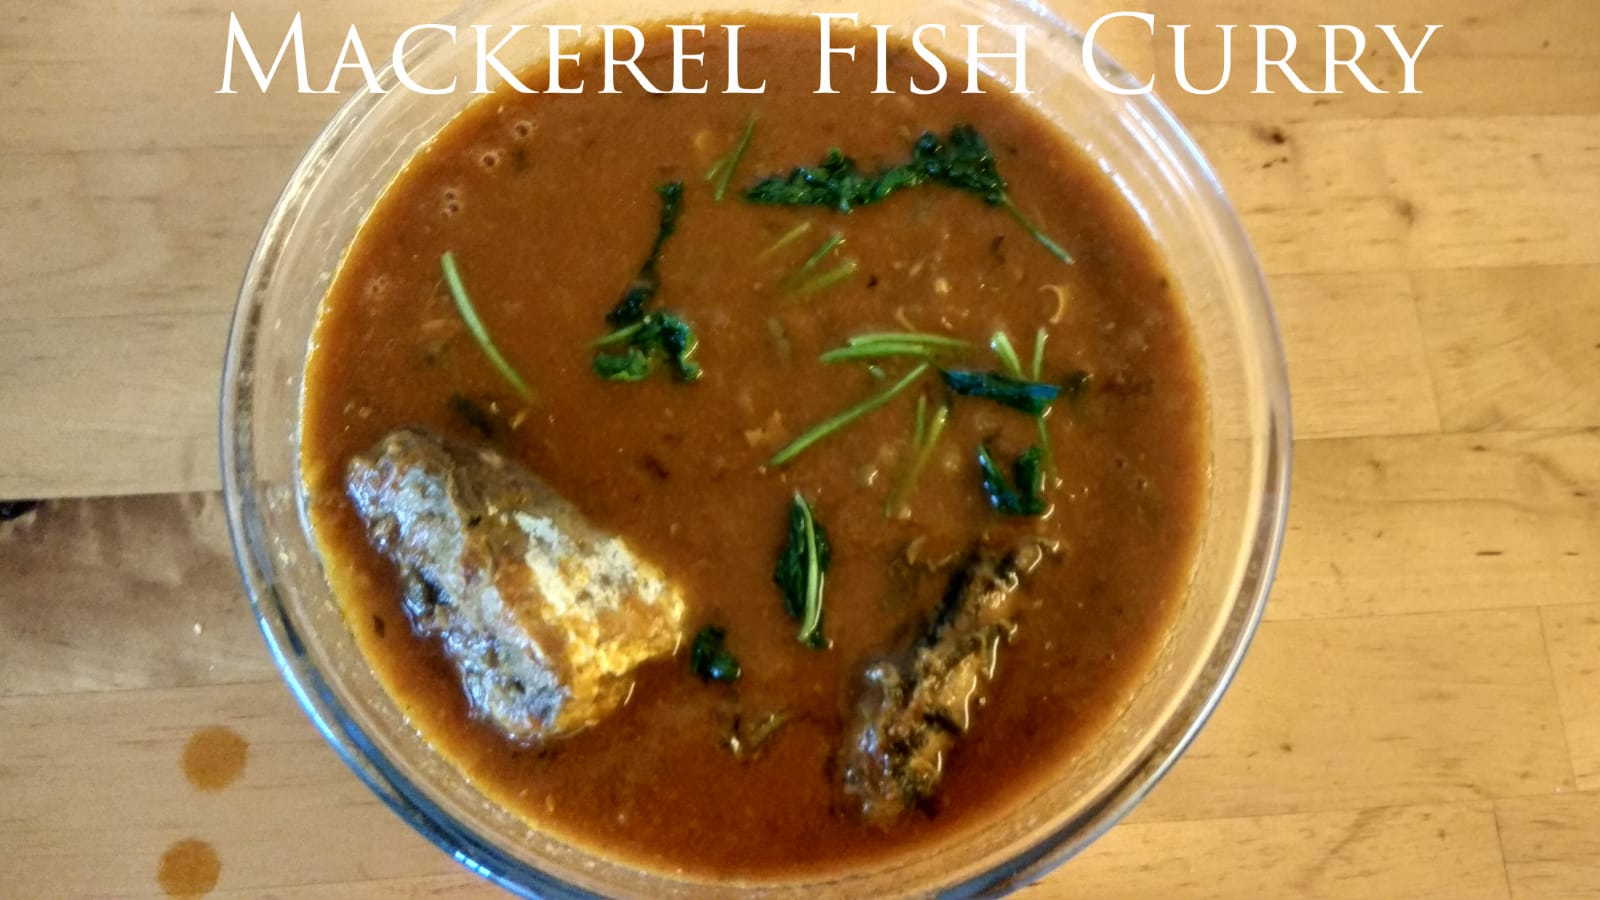 Mackerel Fish Curry | Mackerel Fish Kuzhambu